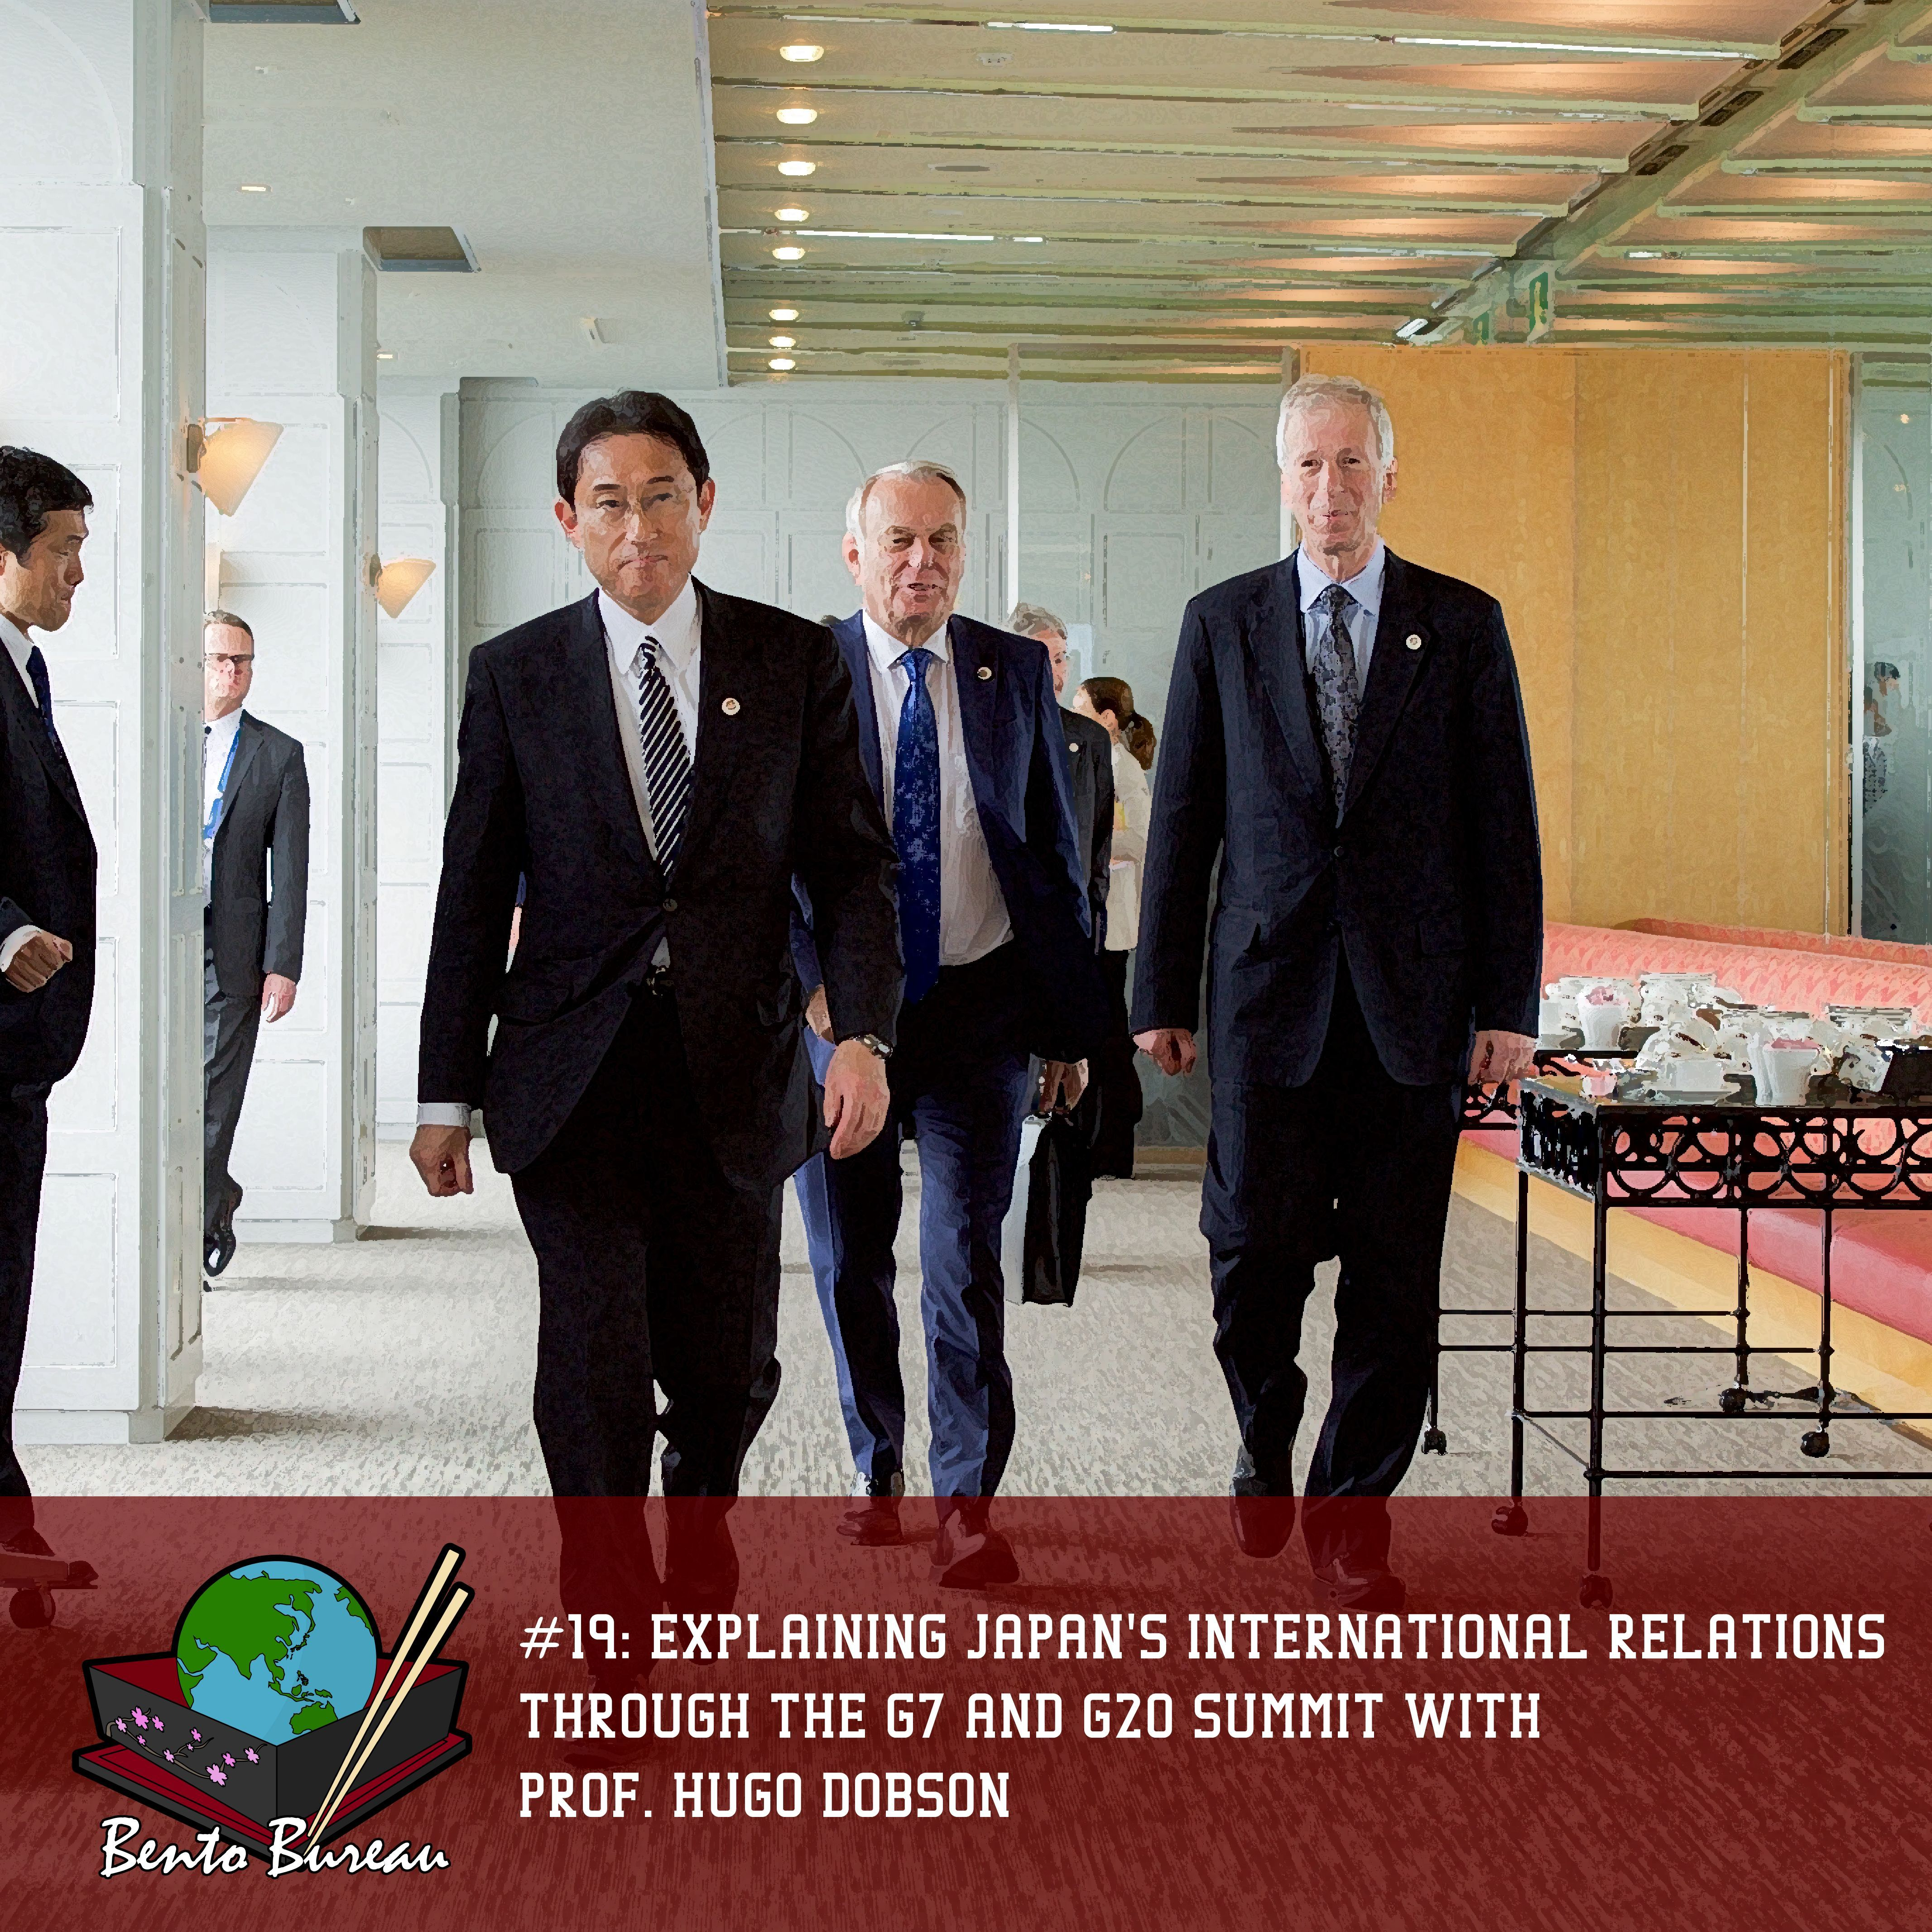 #19: Explaining Japan's international relations through the G7 and G20 summit with Prof. Hugo Dobson